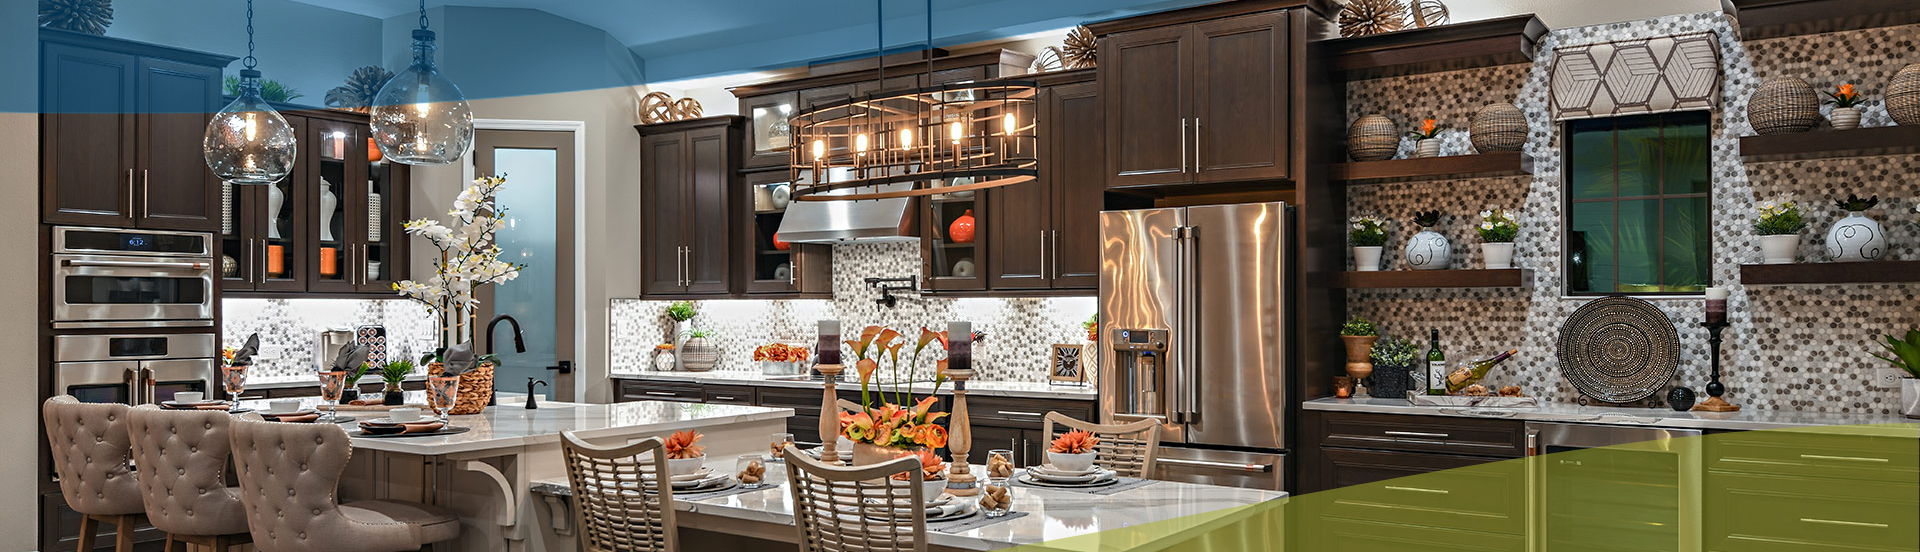 Spice kitchen stainless steel appliances north river ranch